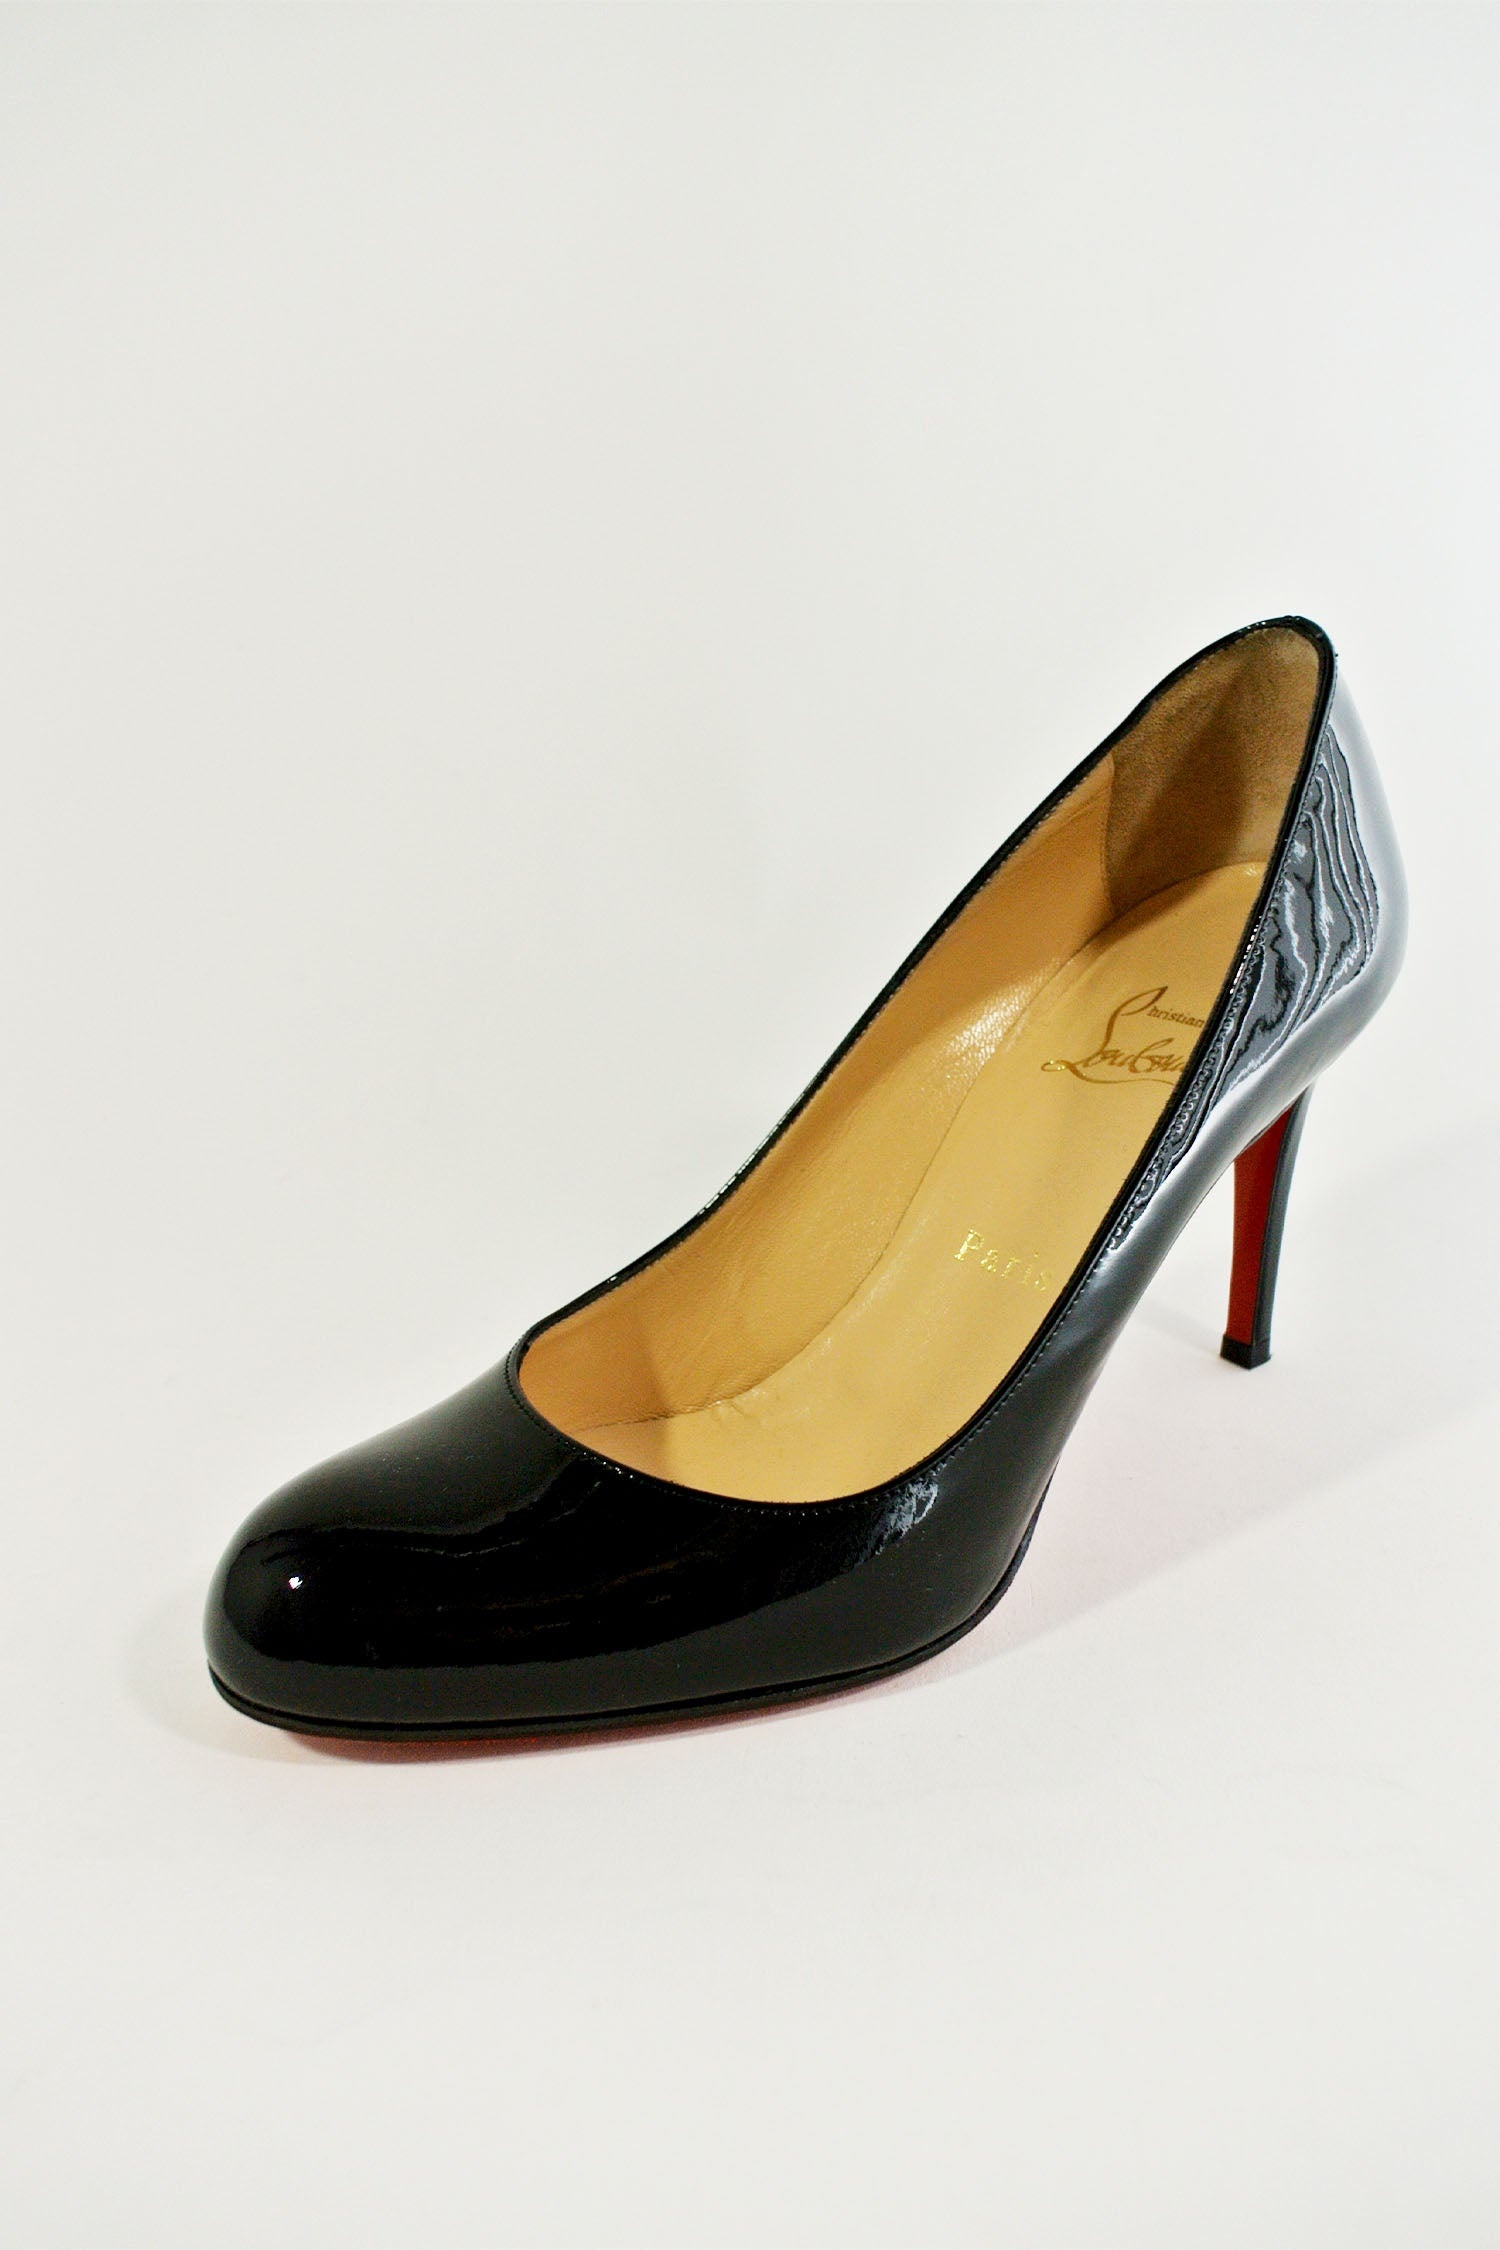 Christian Louboutin Simple Pump Sz 37.5